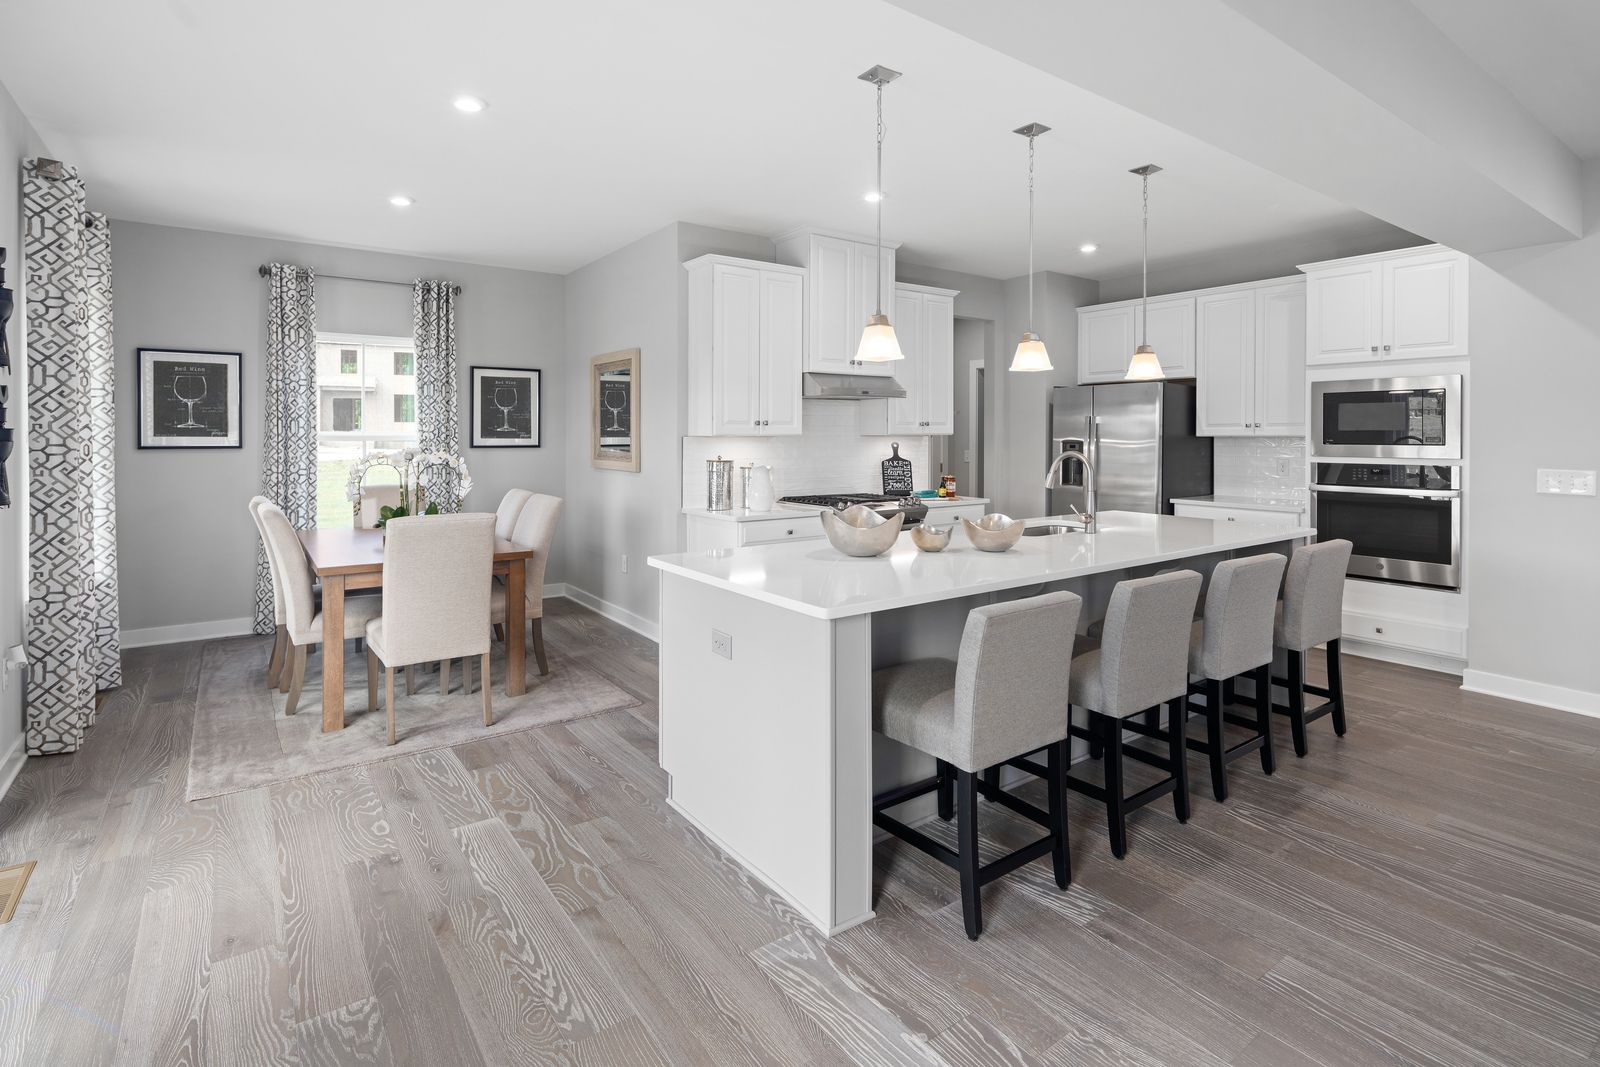 Kitchen featured in the Columbia By Ryan Homes in Chicago, IL